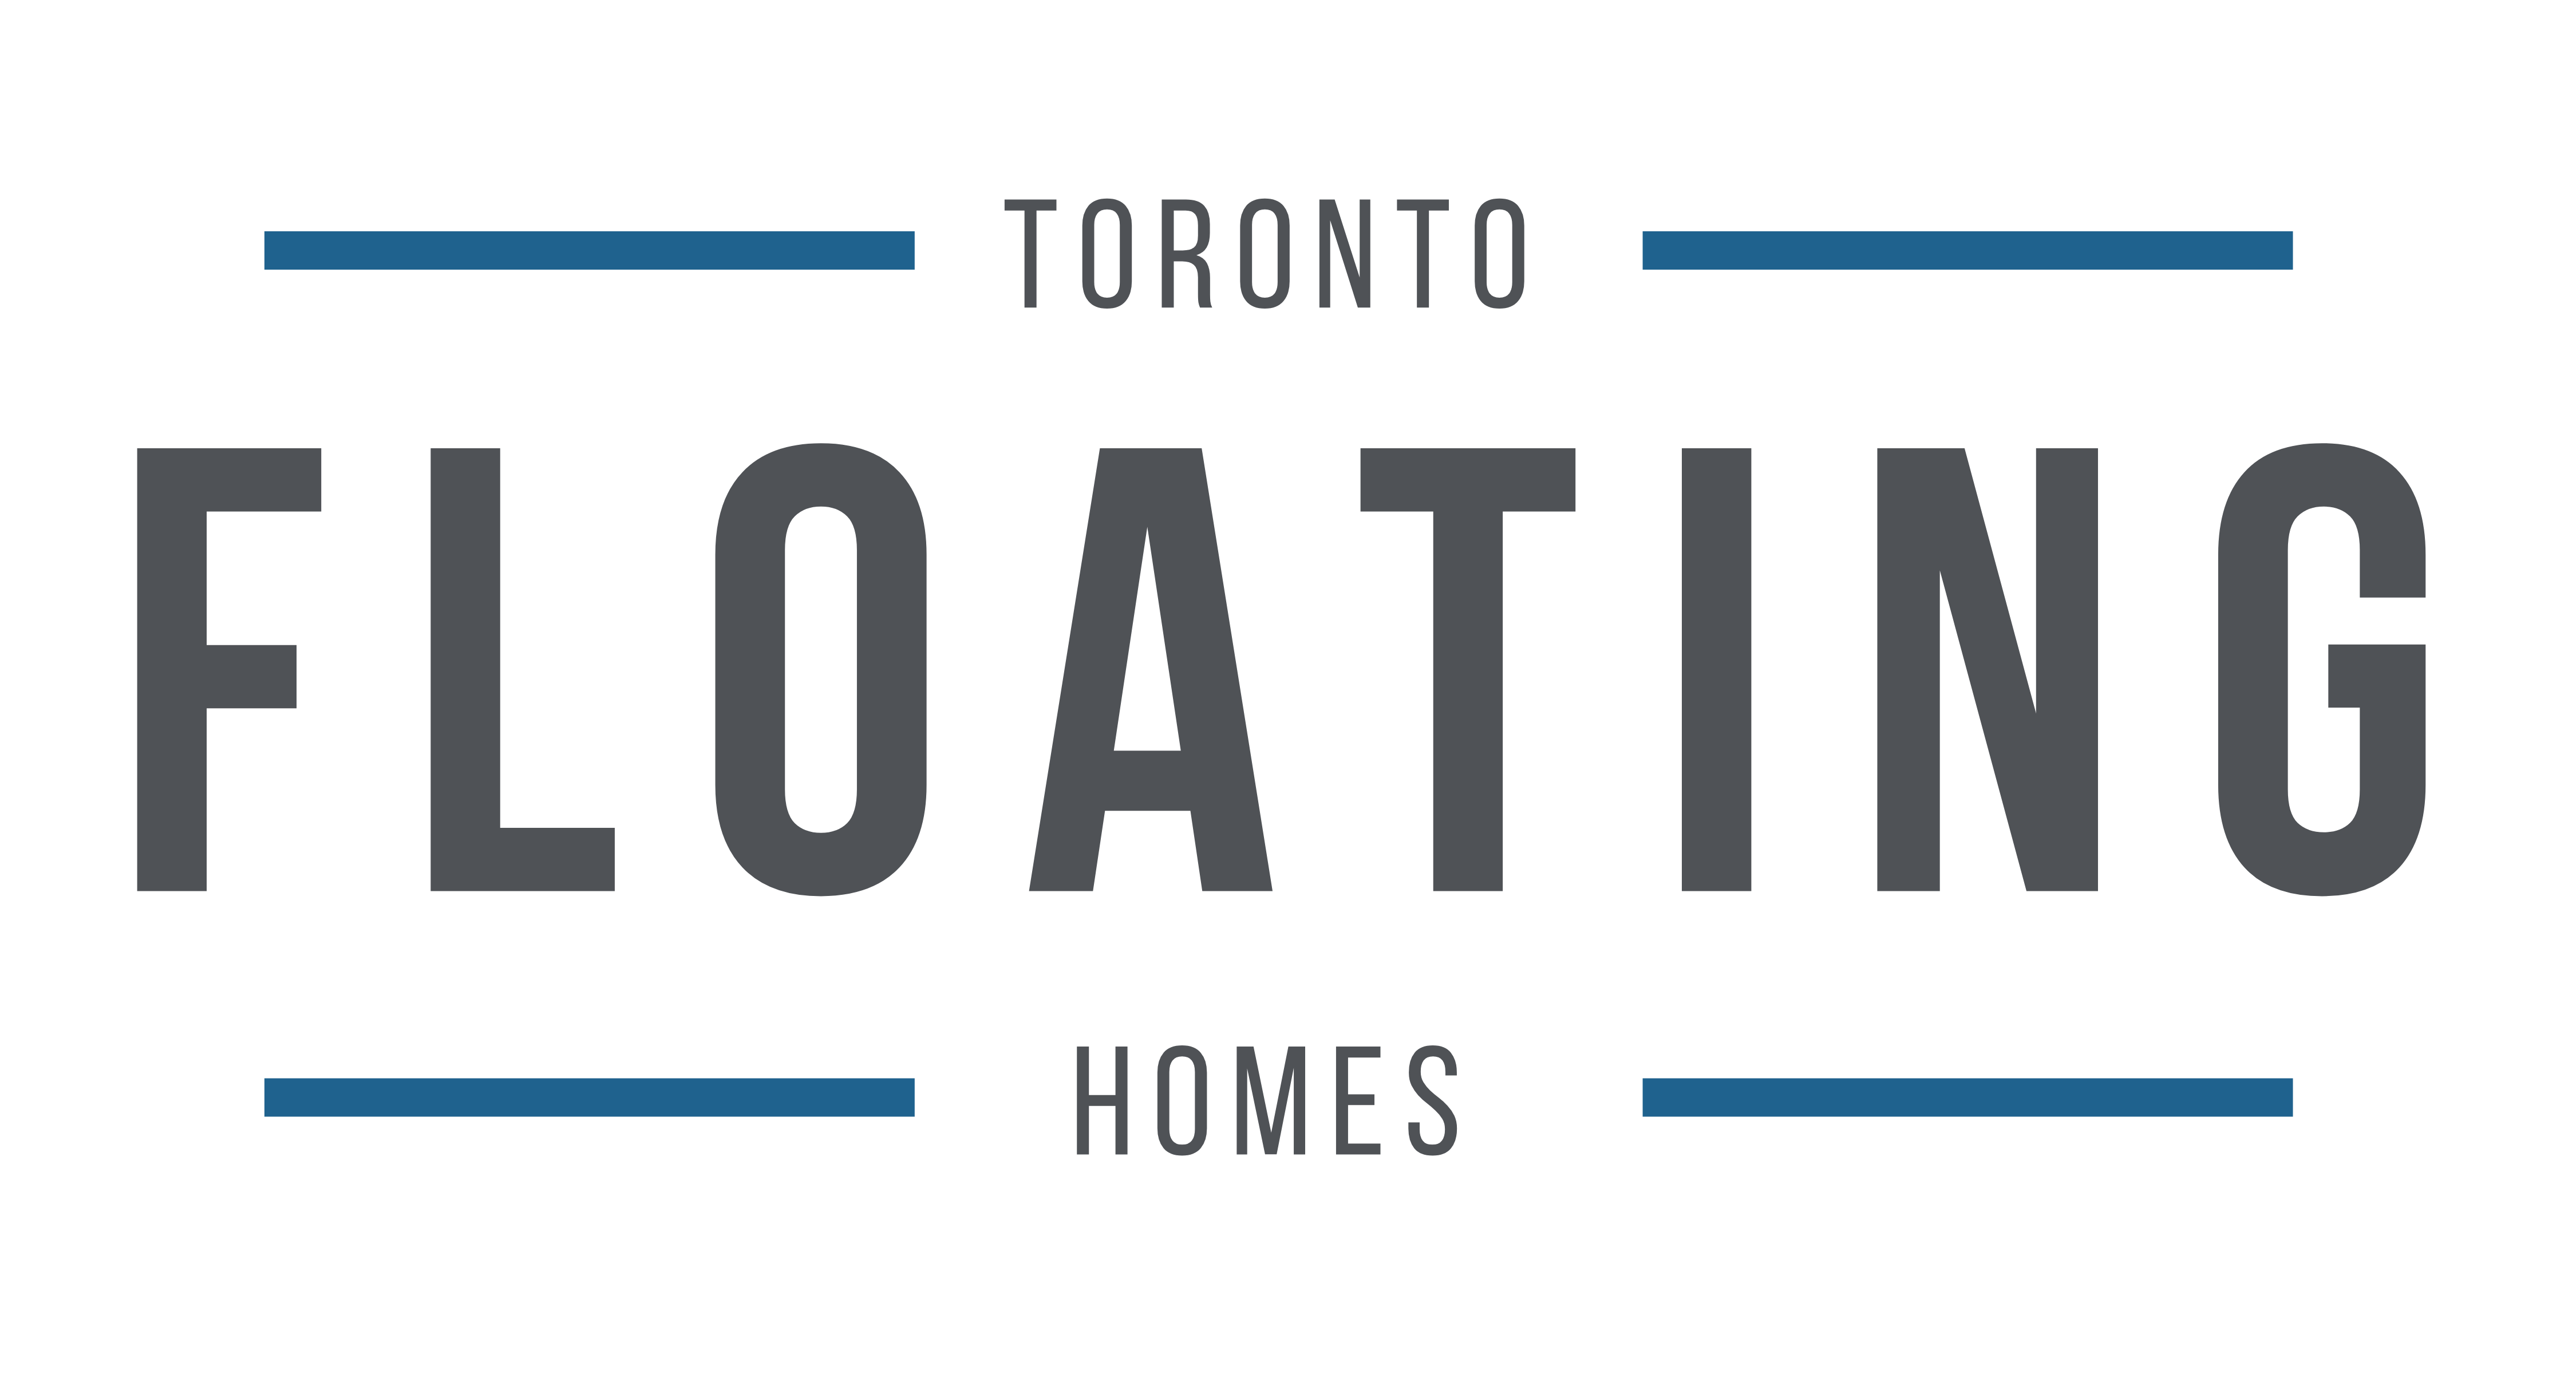 Toronto Floating Homes – Float Homes and Houseboats for Sale in Toronto